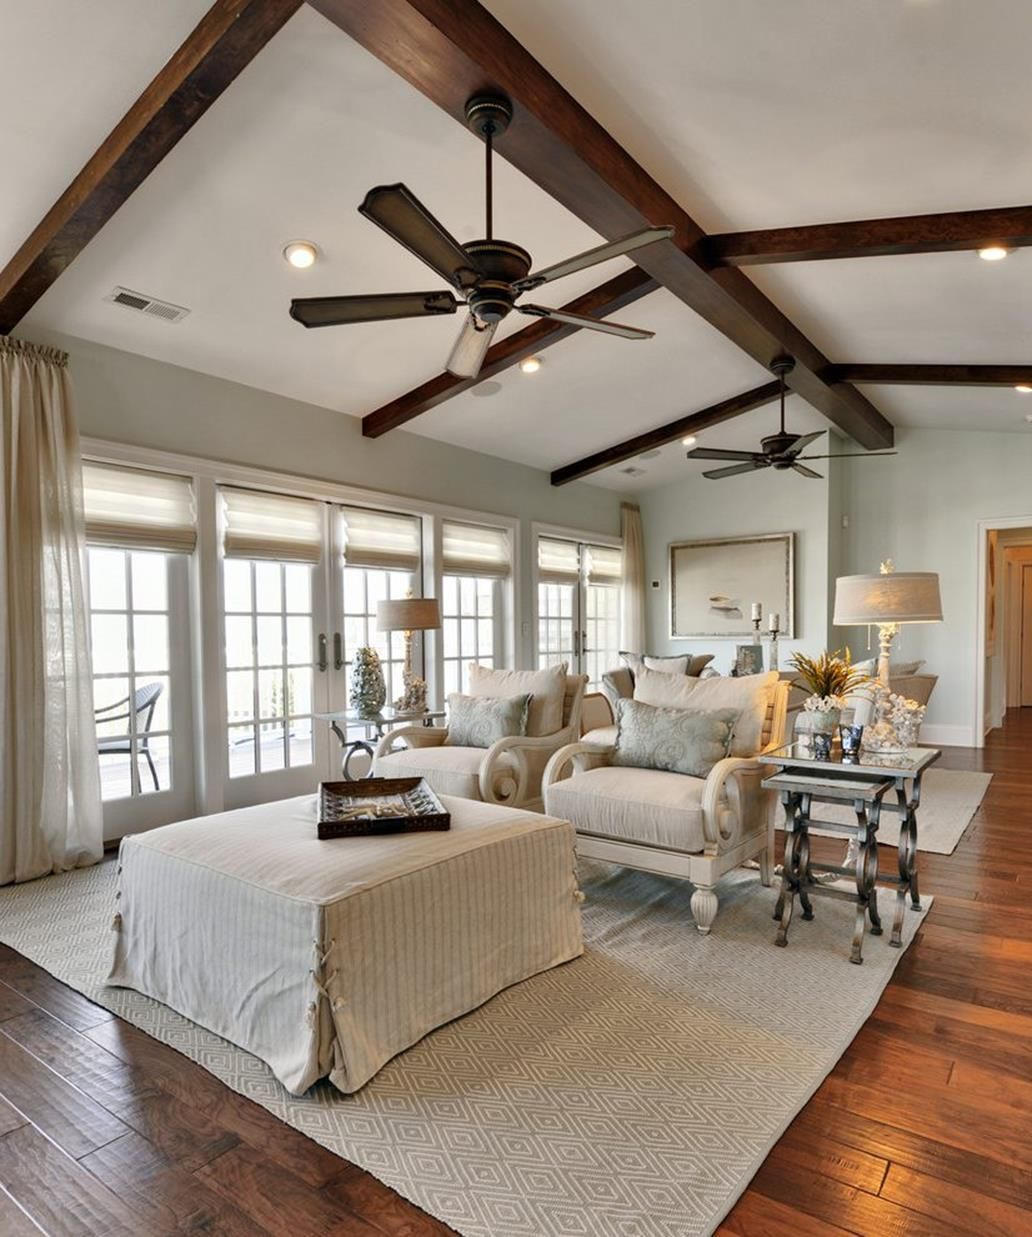 Stunning Slanted Ceiling Living Room Ideas 42 in 2020 ...